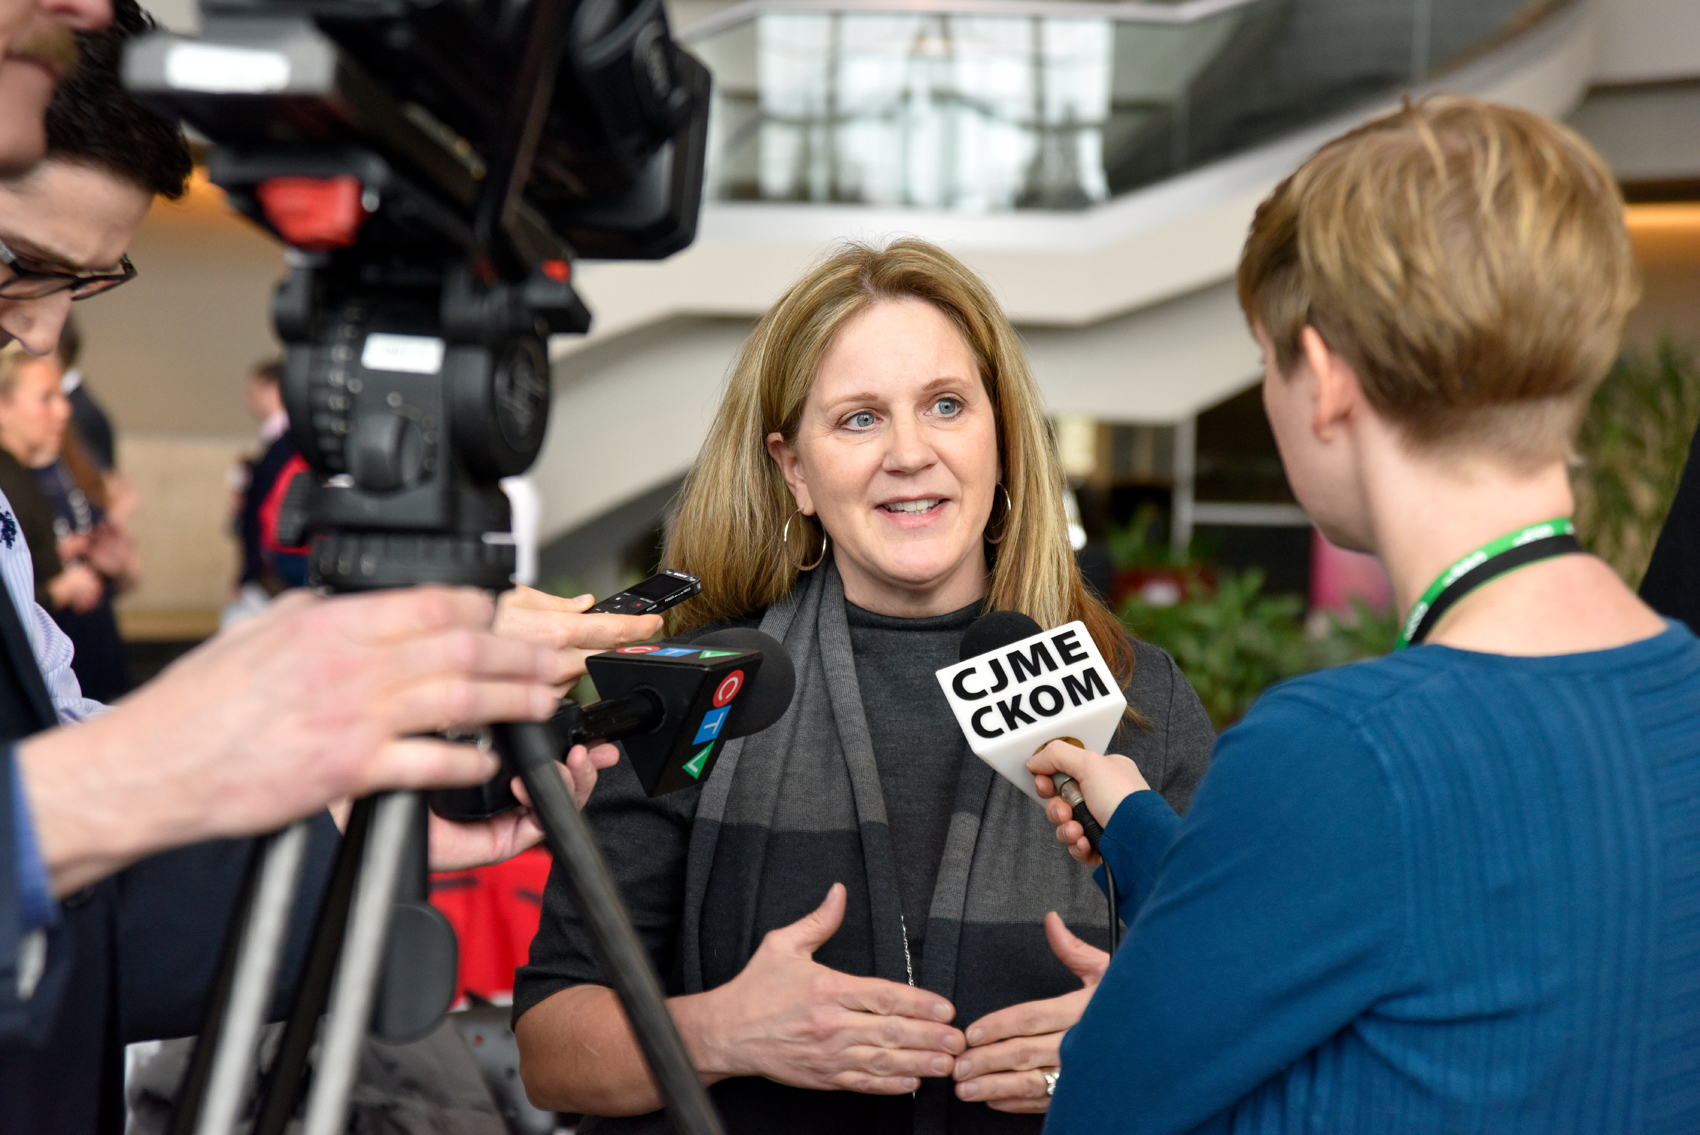 Heather Hadjistavropoulos being interviewed by media following the announcement about the new Public Safety Personnel Internet-delivered Cognitive Behaviour Therapy program. (Photo by Rae Graham)